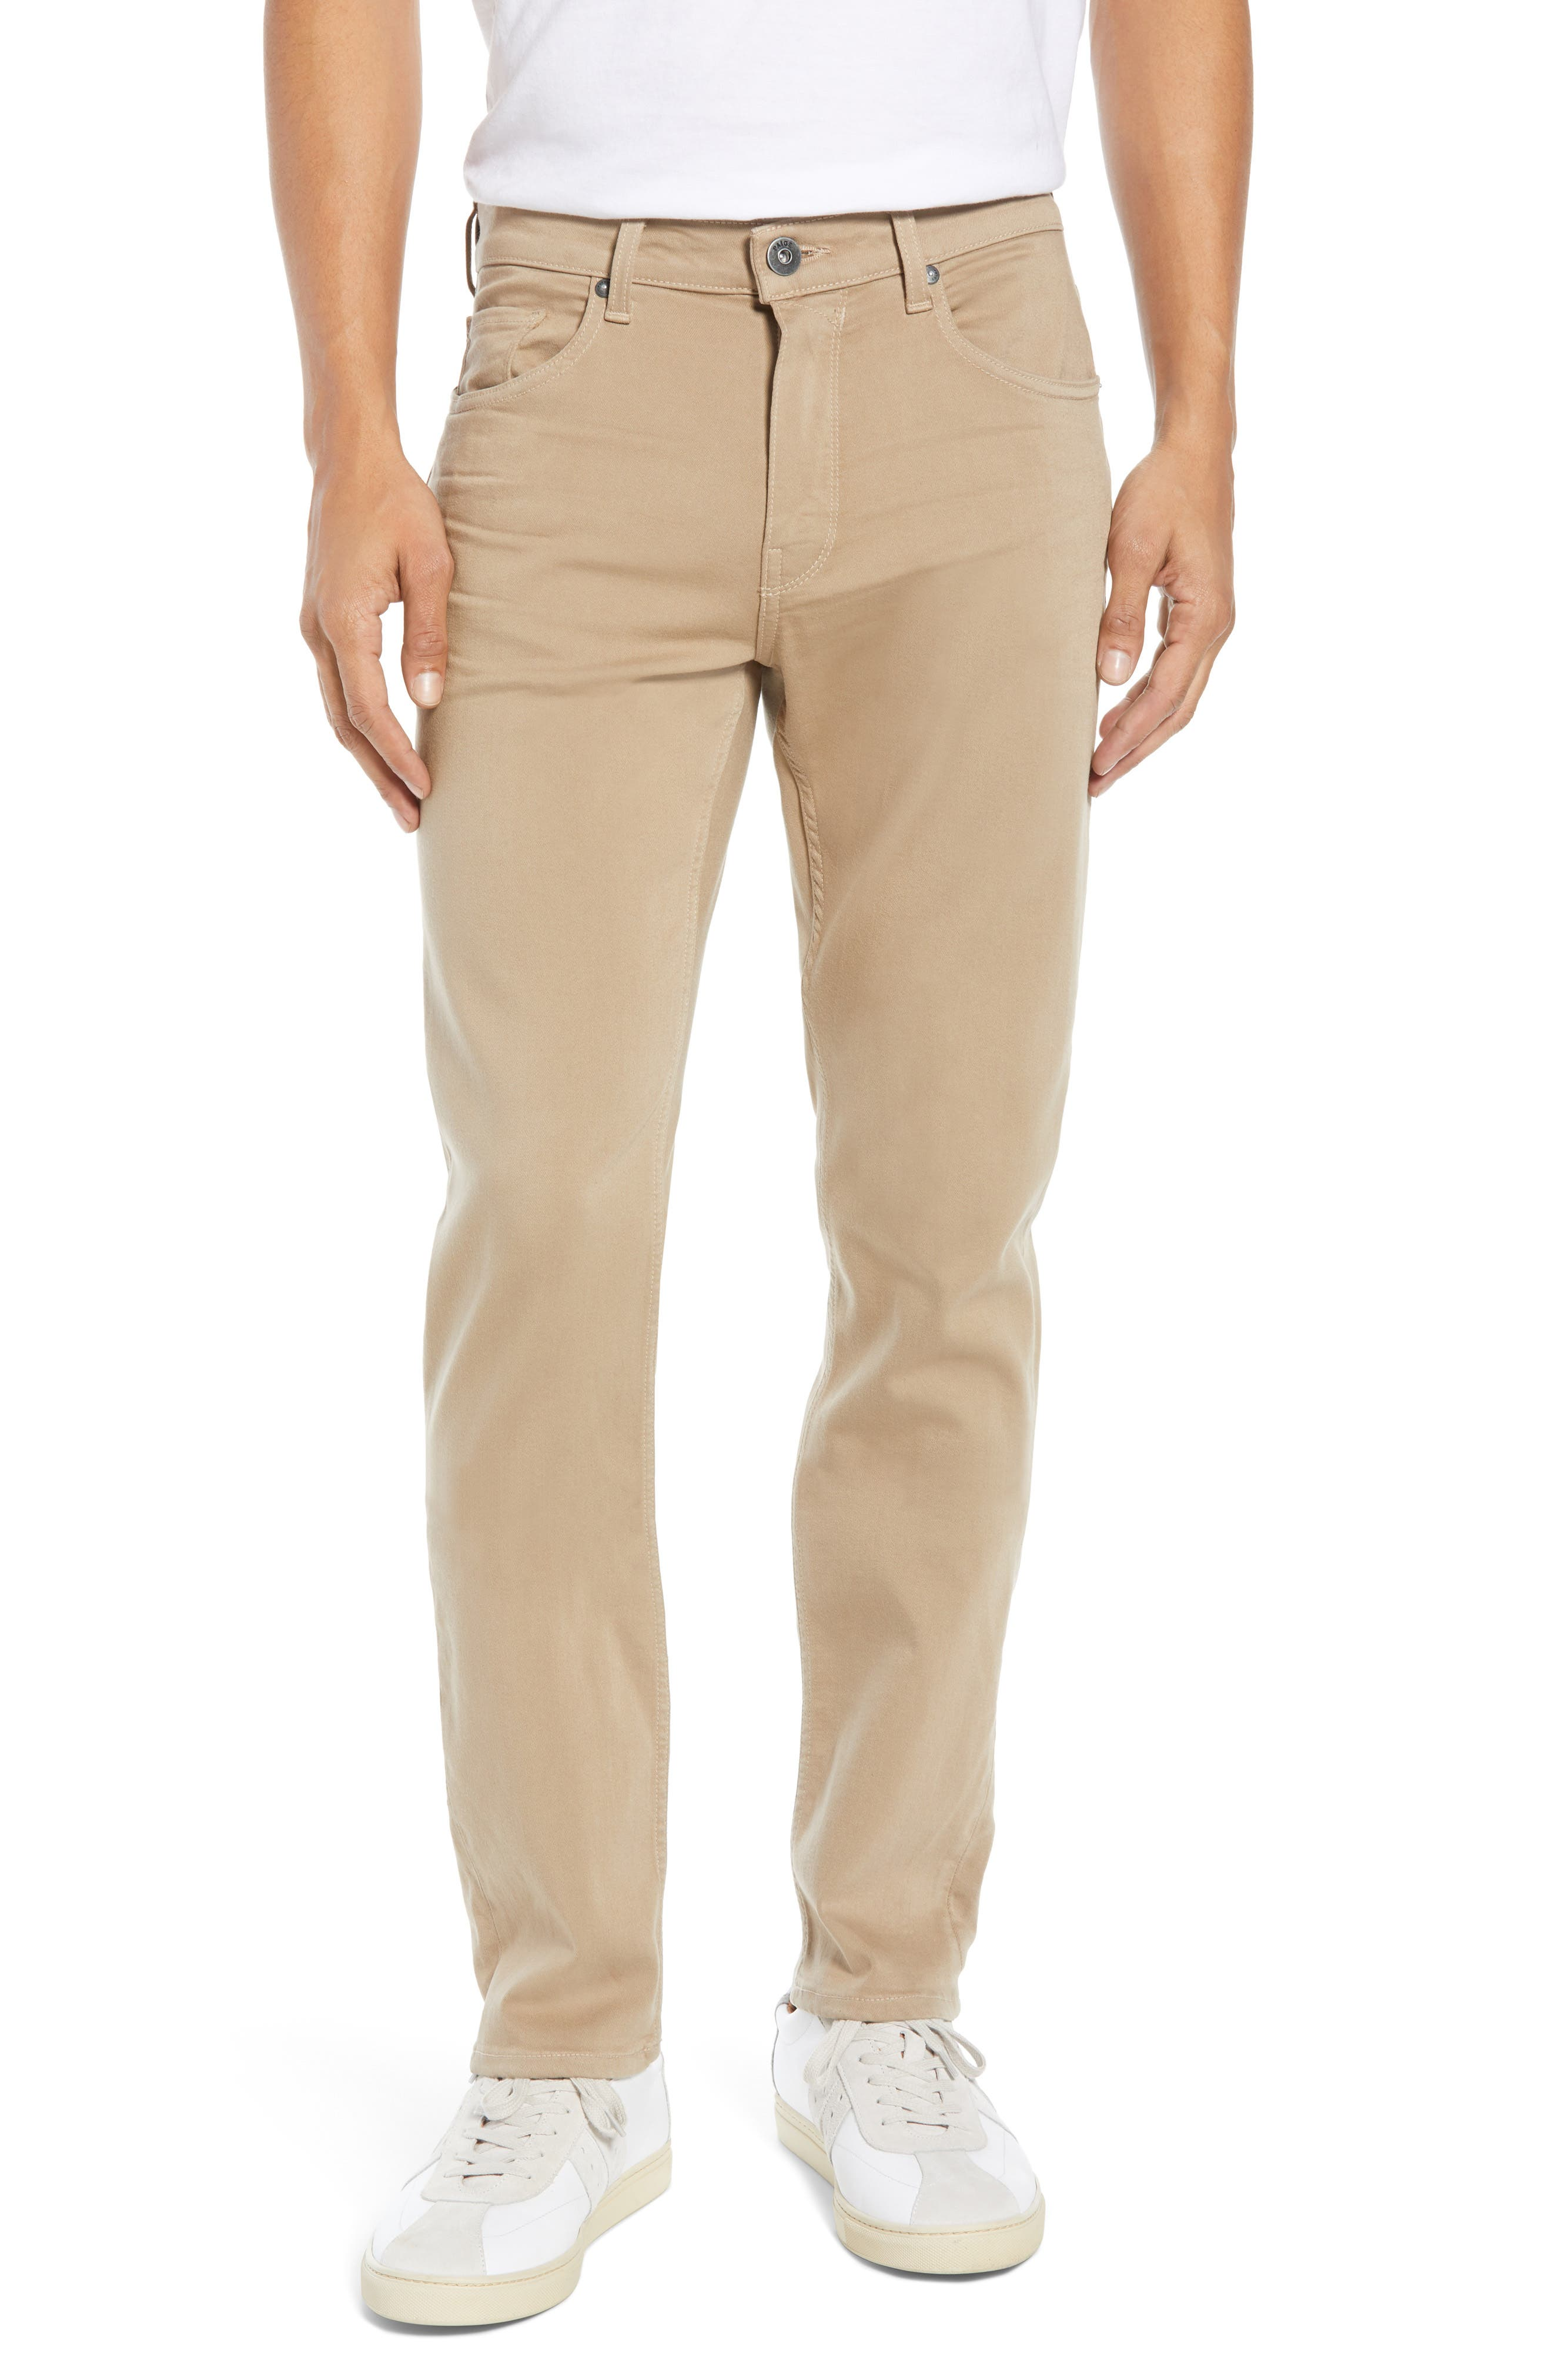 Transcend - Federal Slim Straight Leg Jeans, Main, color, BAKED TAN